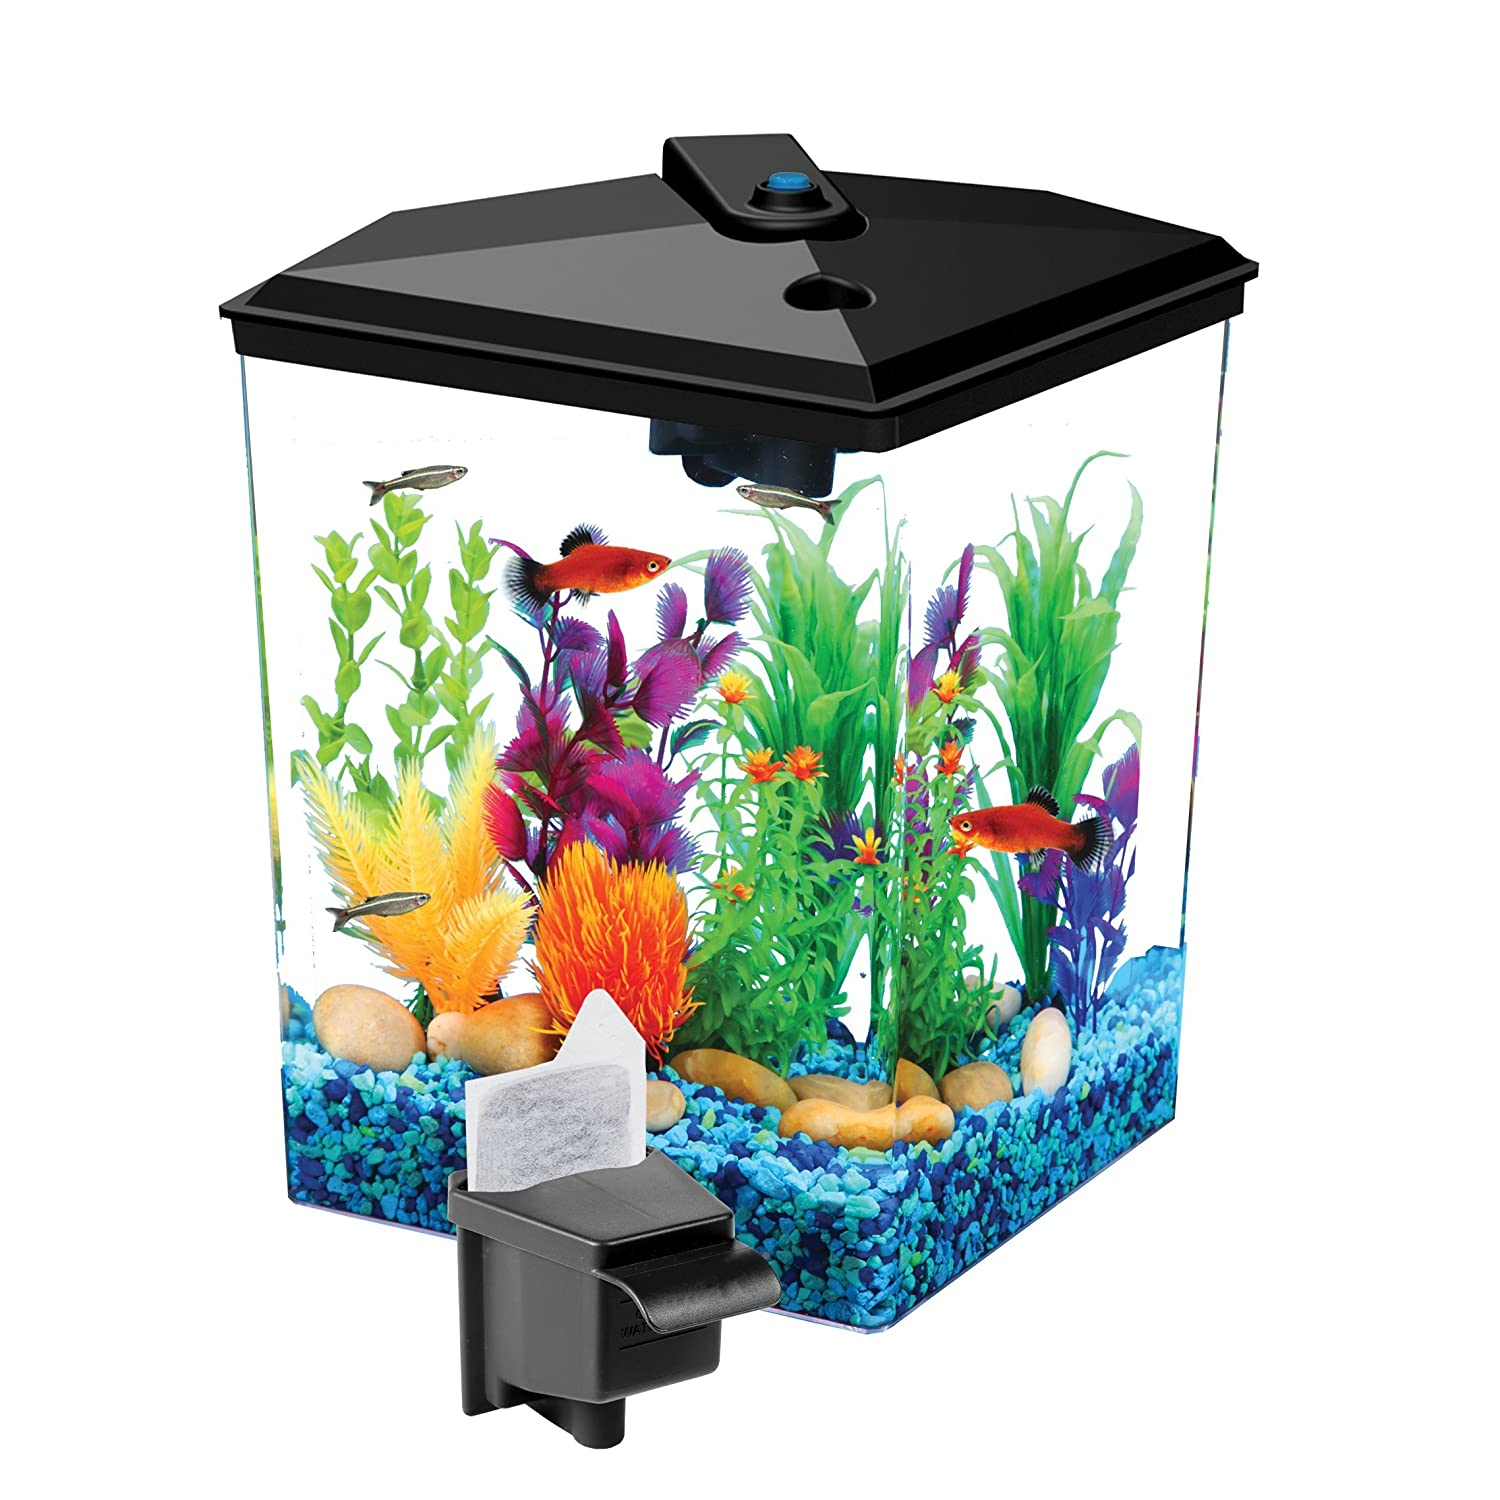 Image result for filters for betta fish tank